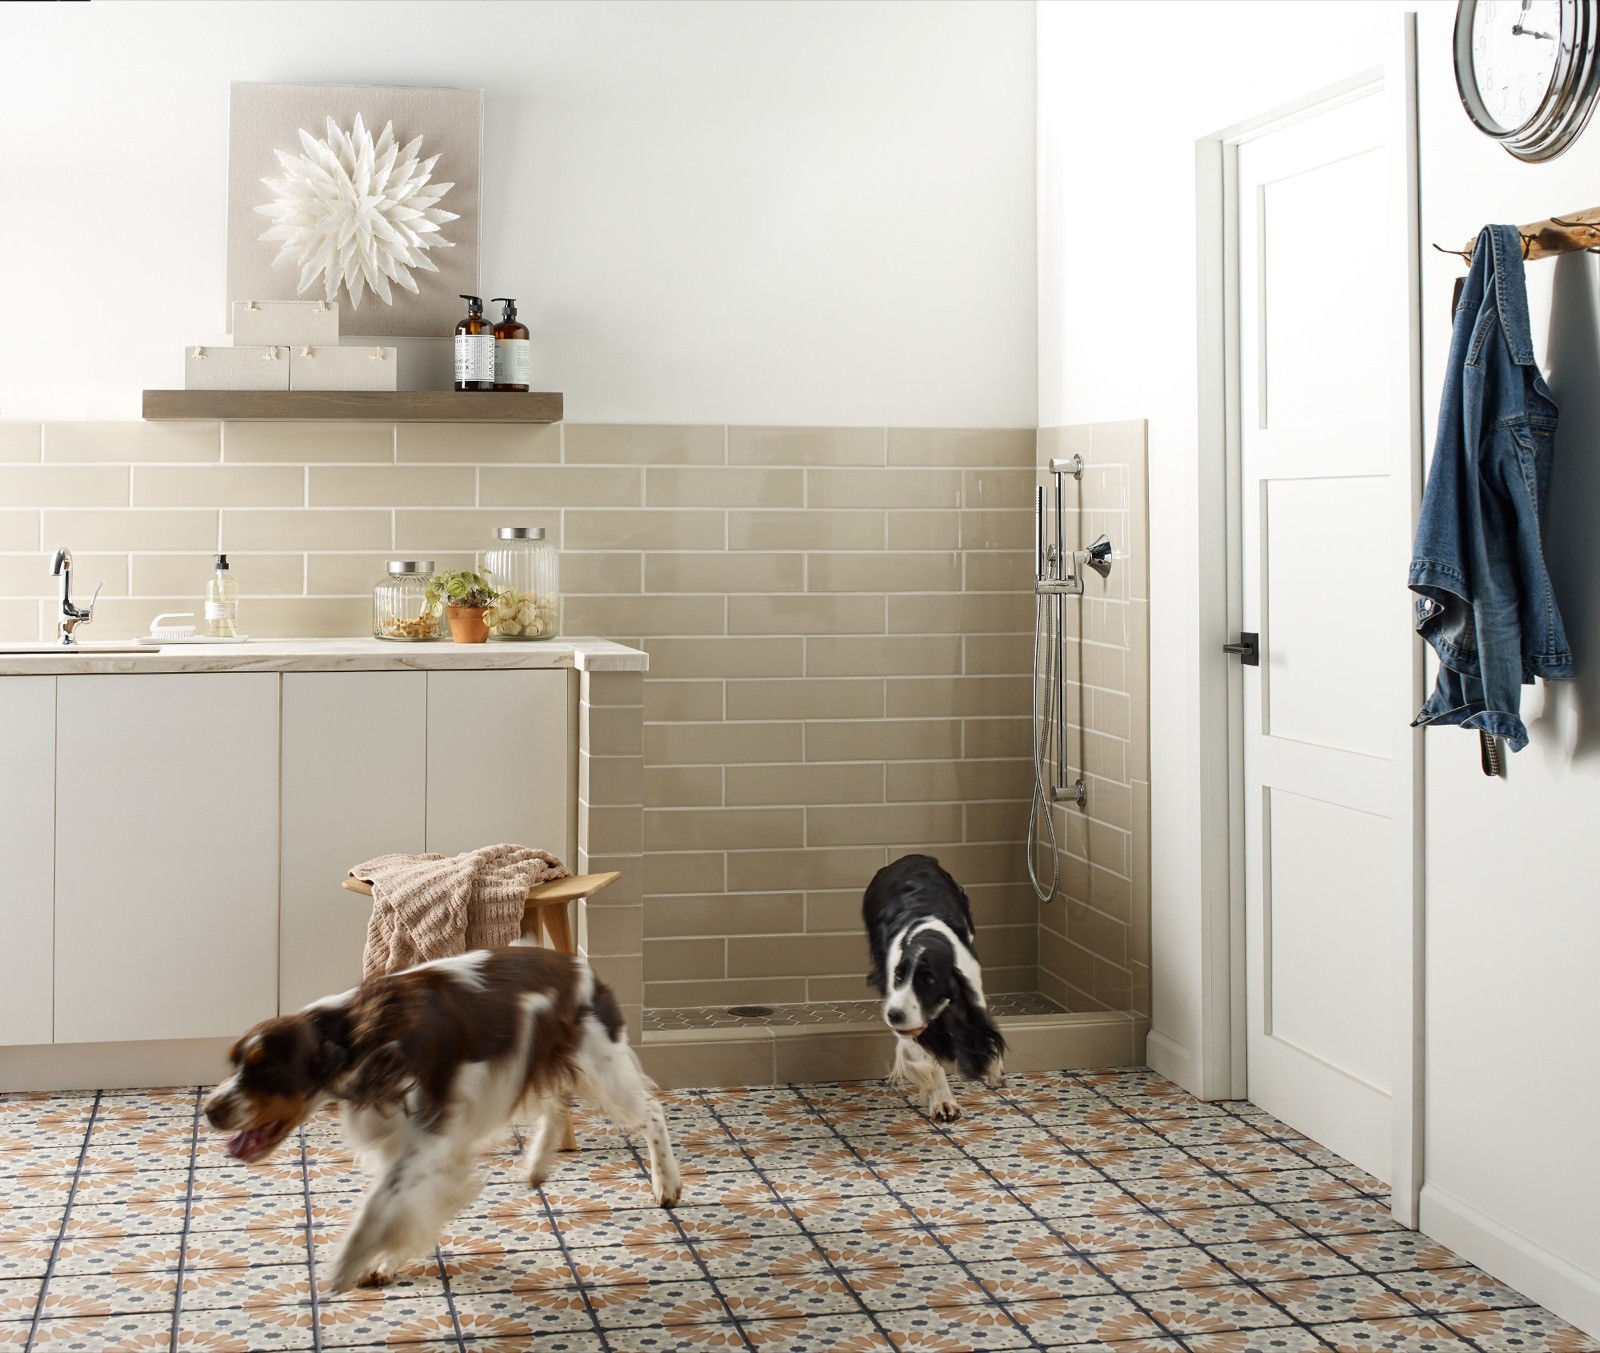 Dogs on floor | Shelley Carpets